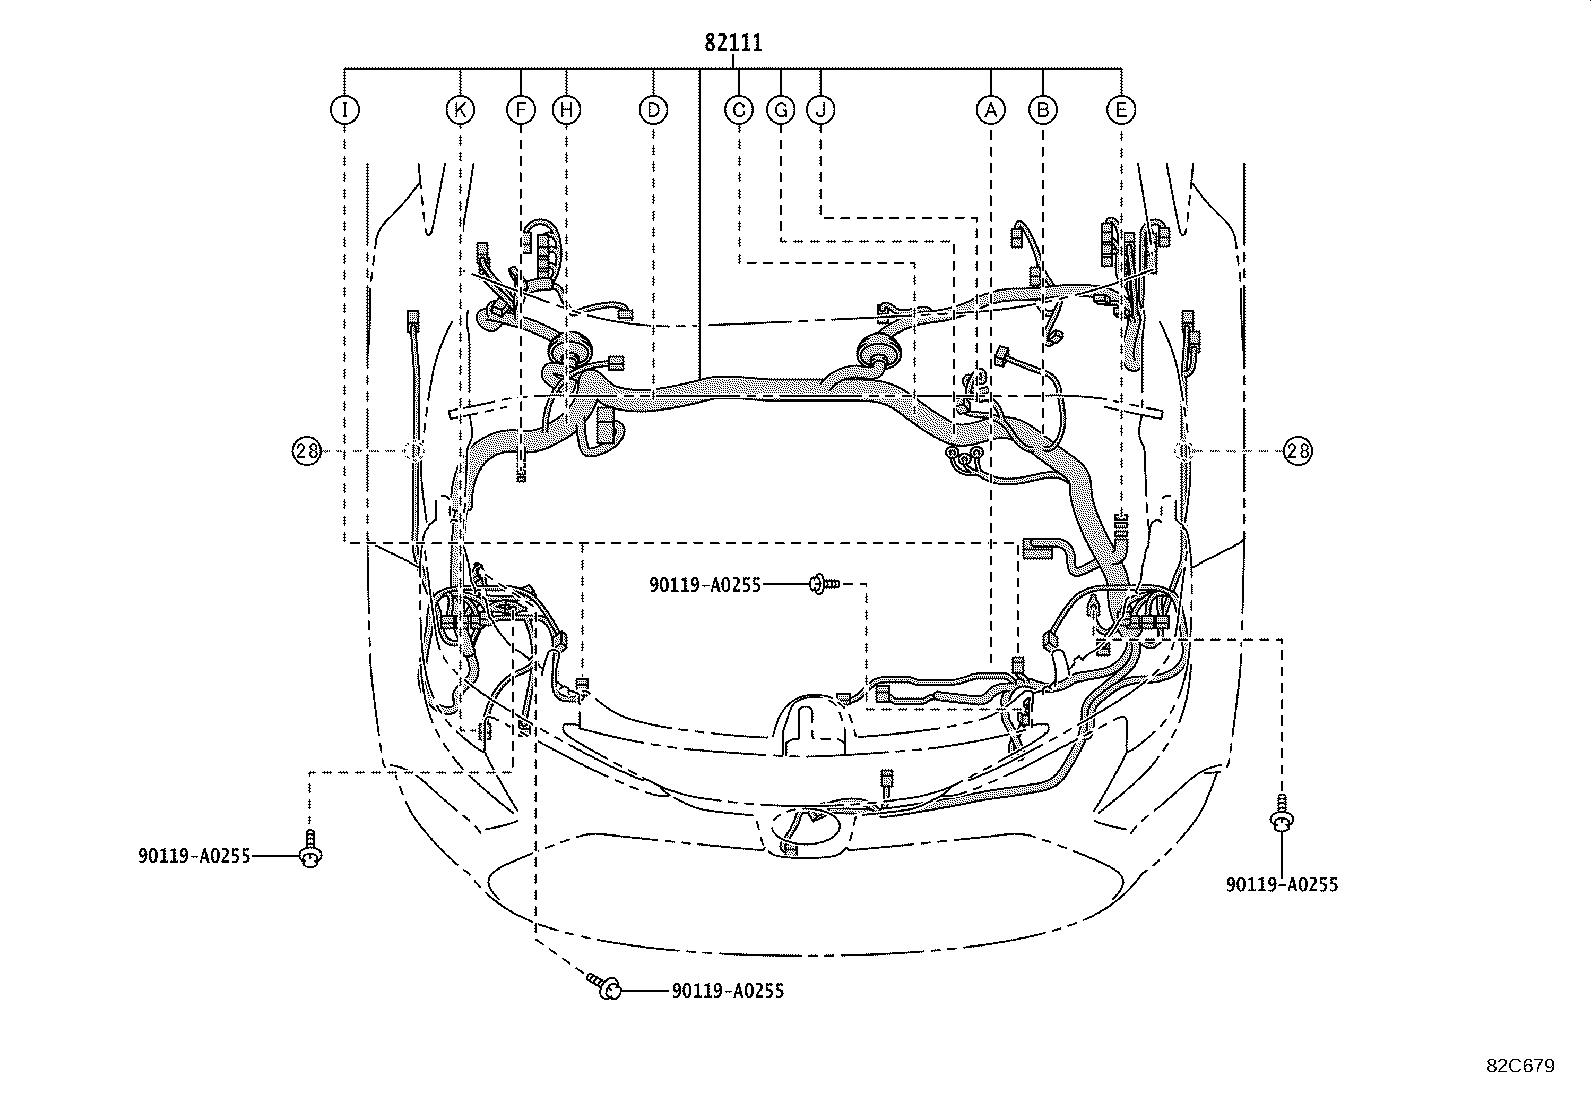 Toyota Corolla Protector. Wiring harness, no. 3; wiring